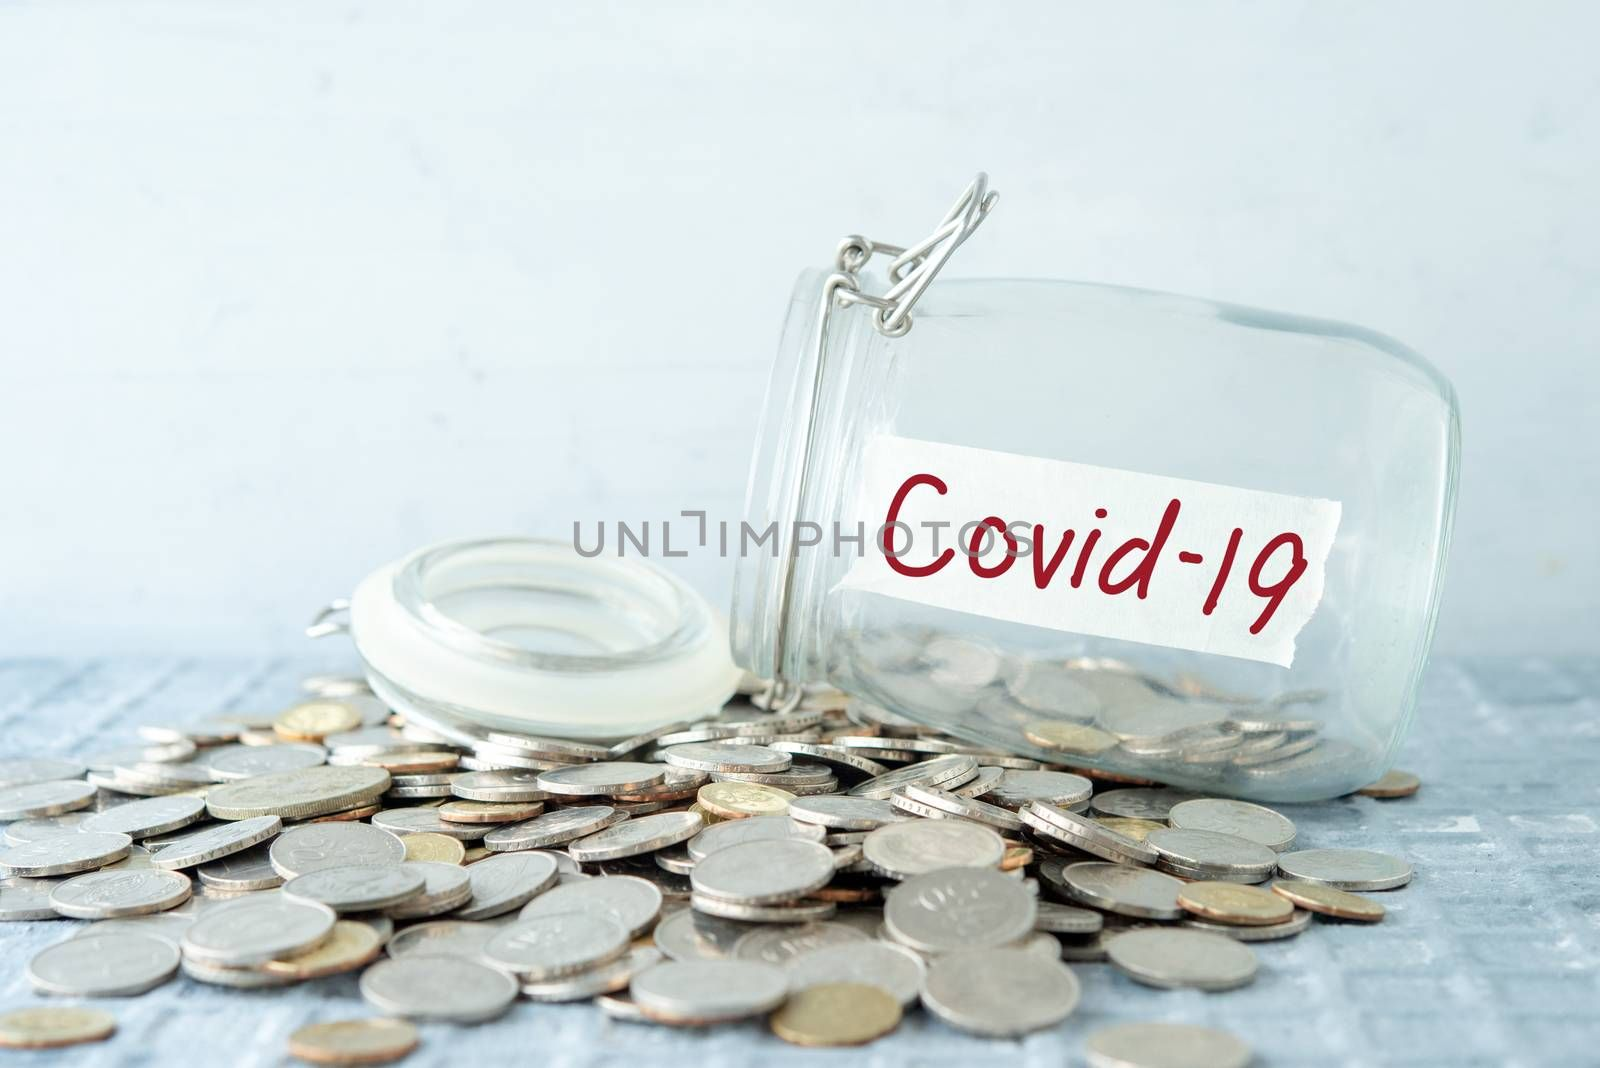 Coins in glass money jar with covid19 label, financial concept.